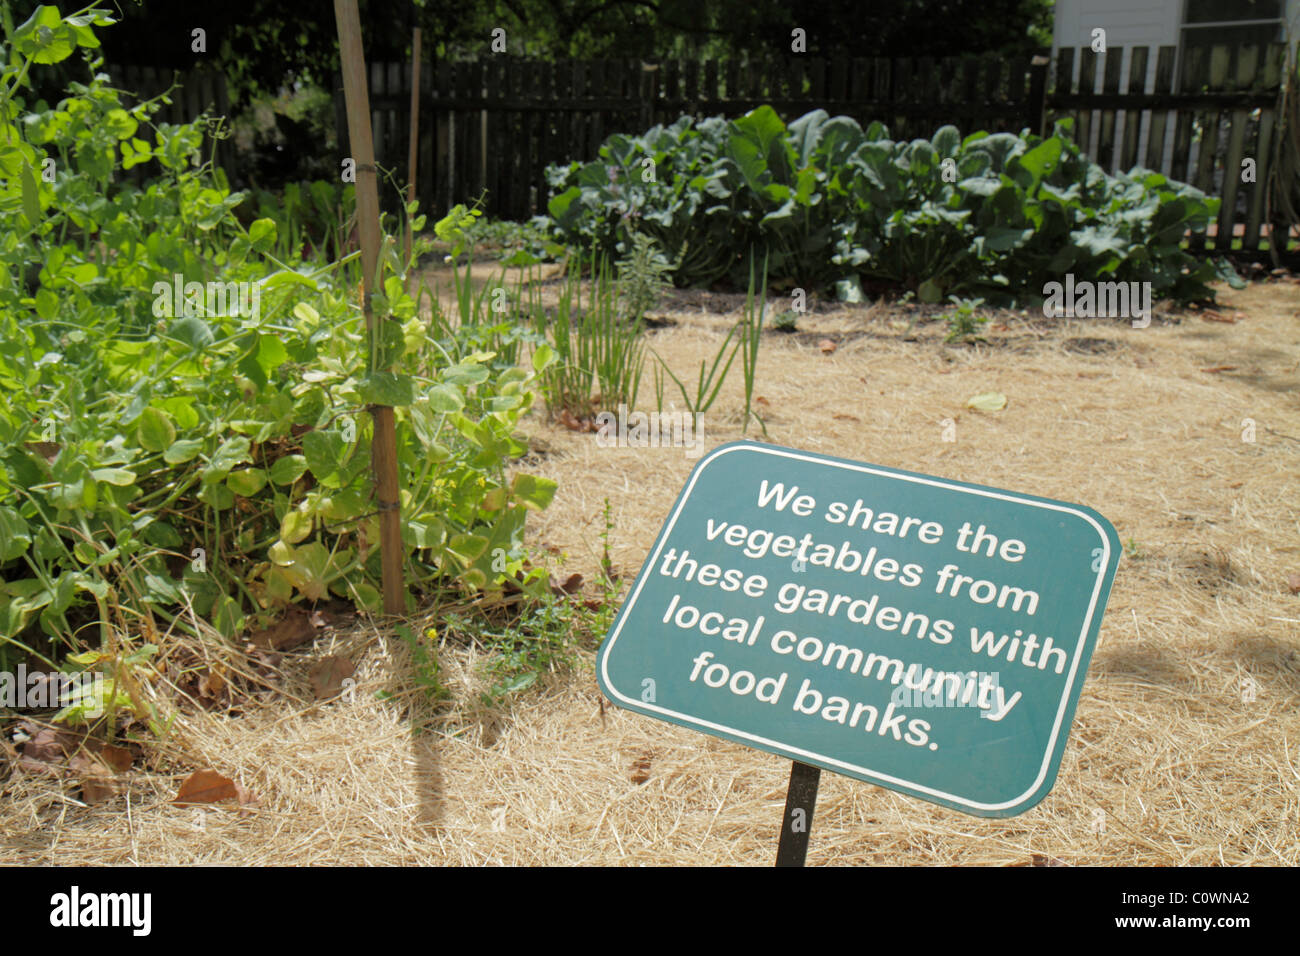 Orlando Florida Harry P. Leu Gardens Sign Vegetable Garden Community Food  Bank